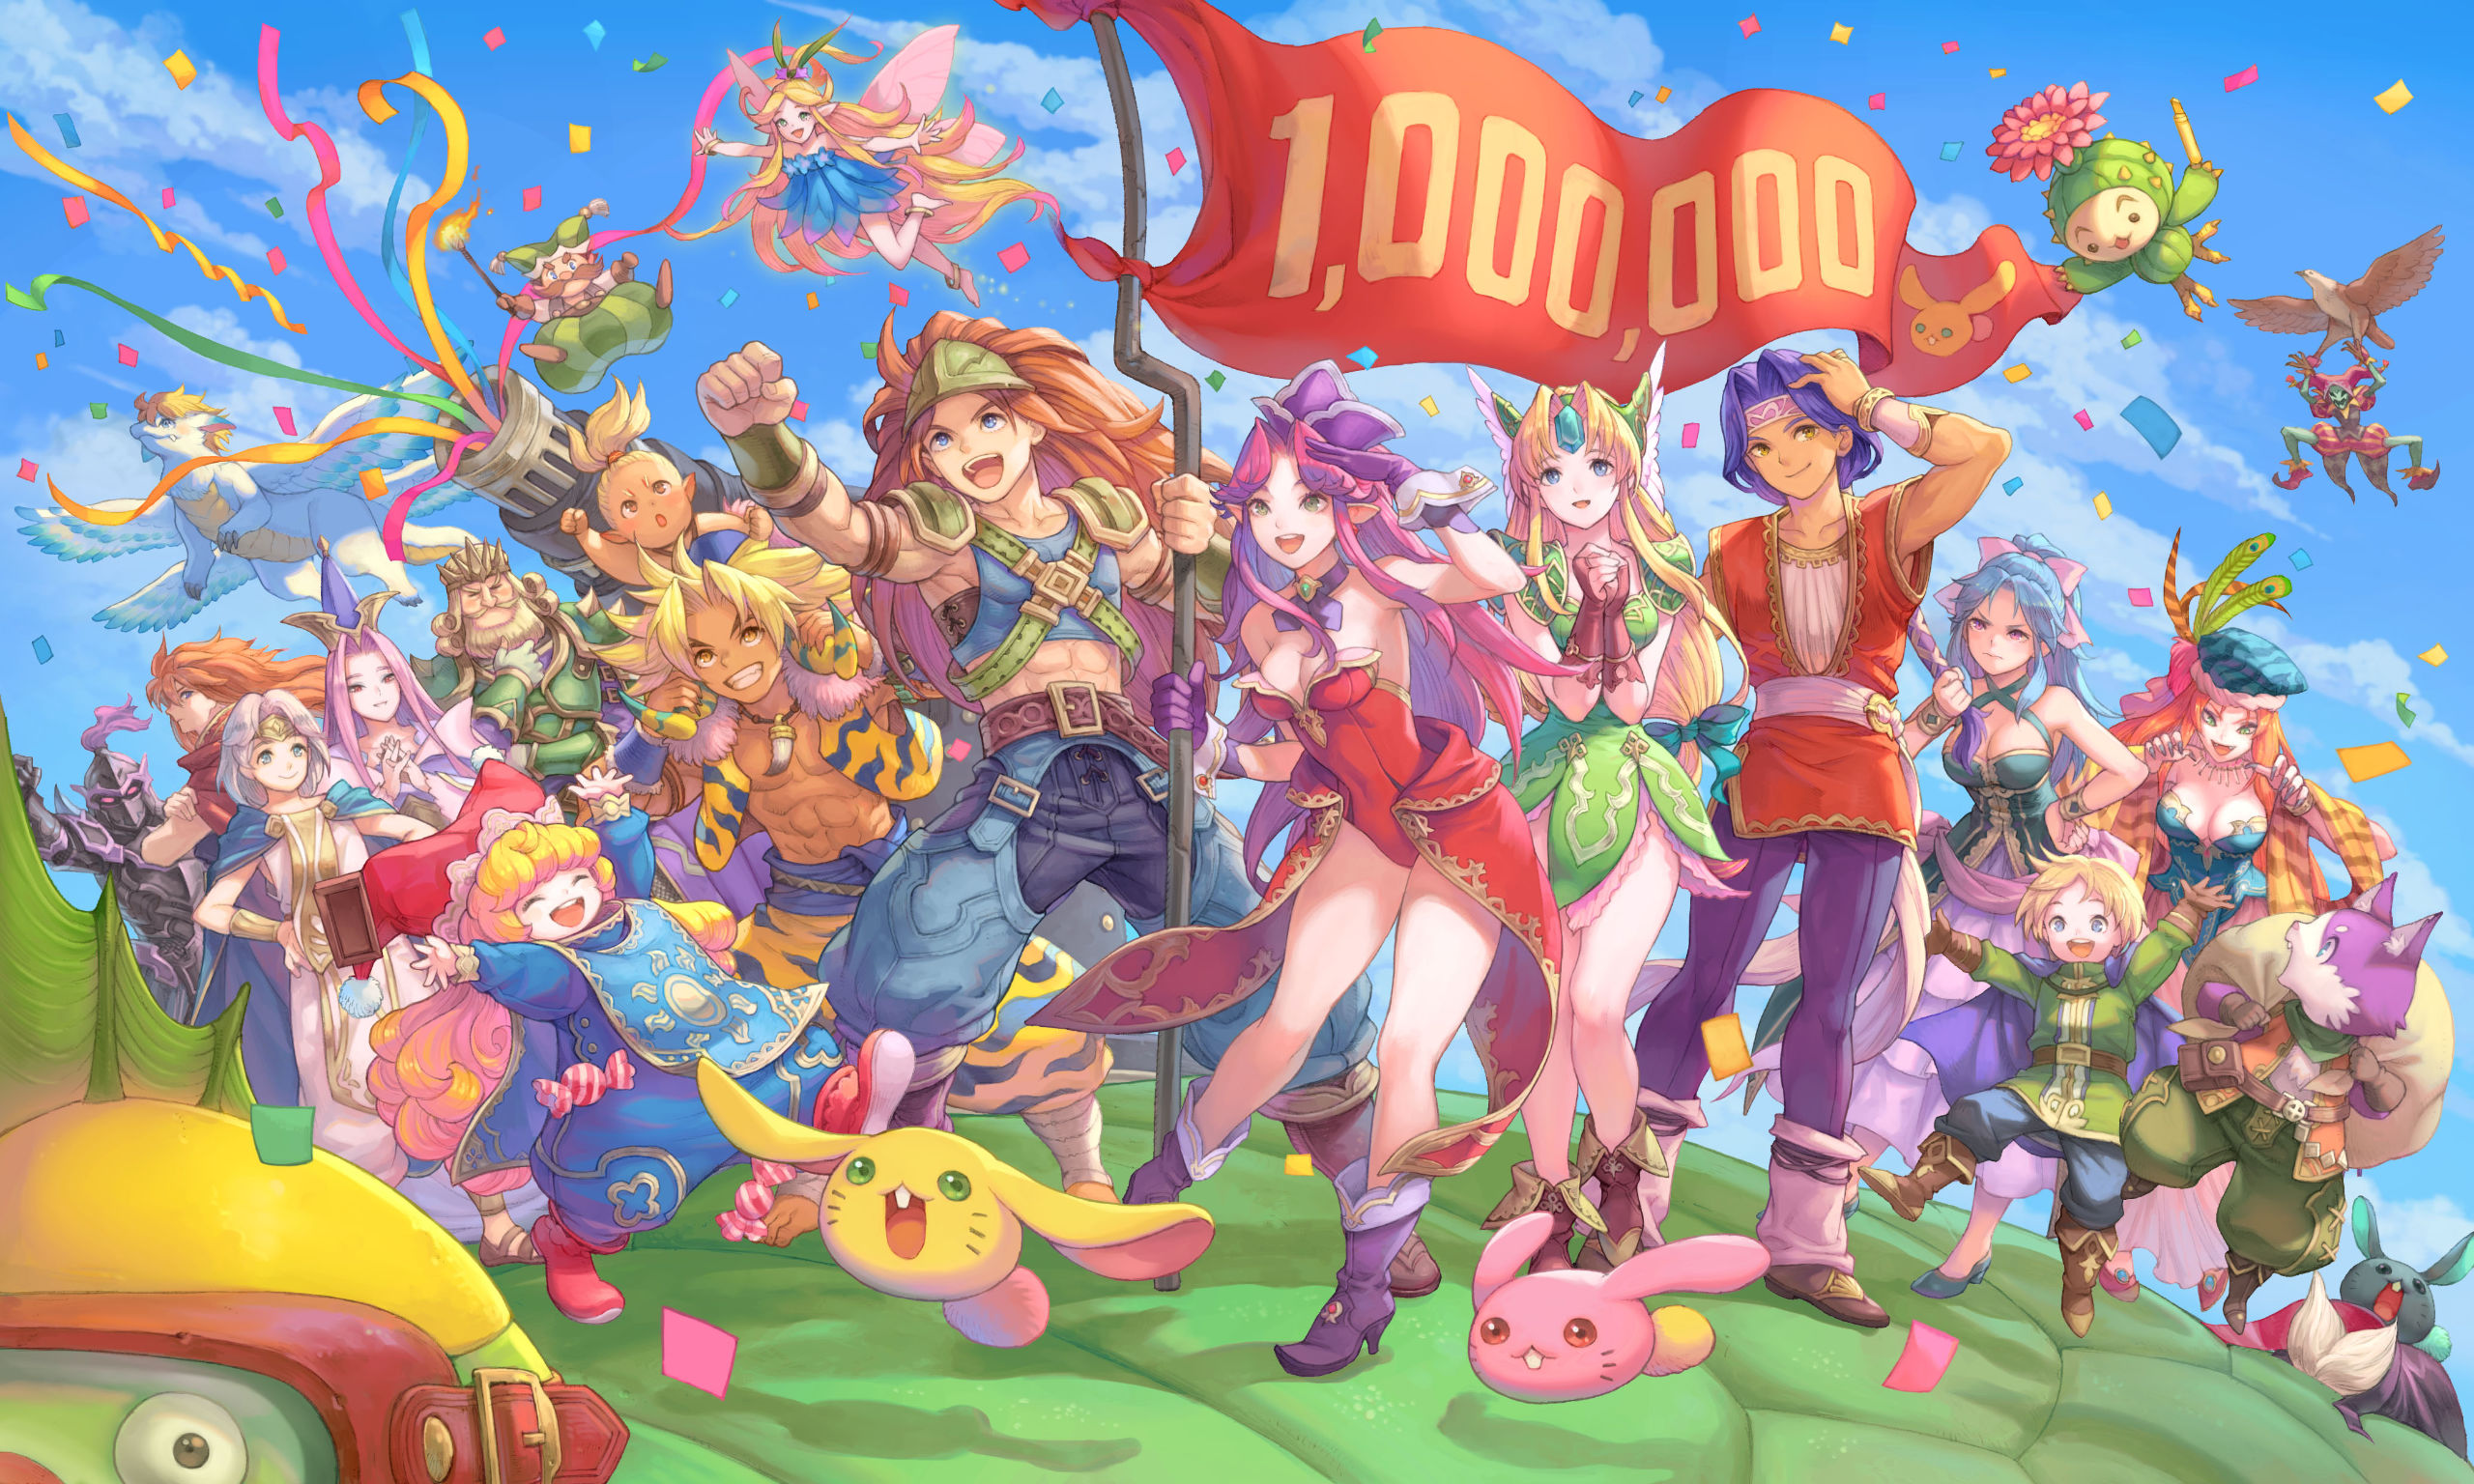 The full Trials of Mana cast including Duran and Angela holding a 1,000,000 banner.